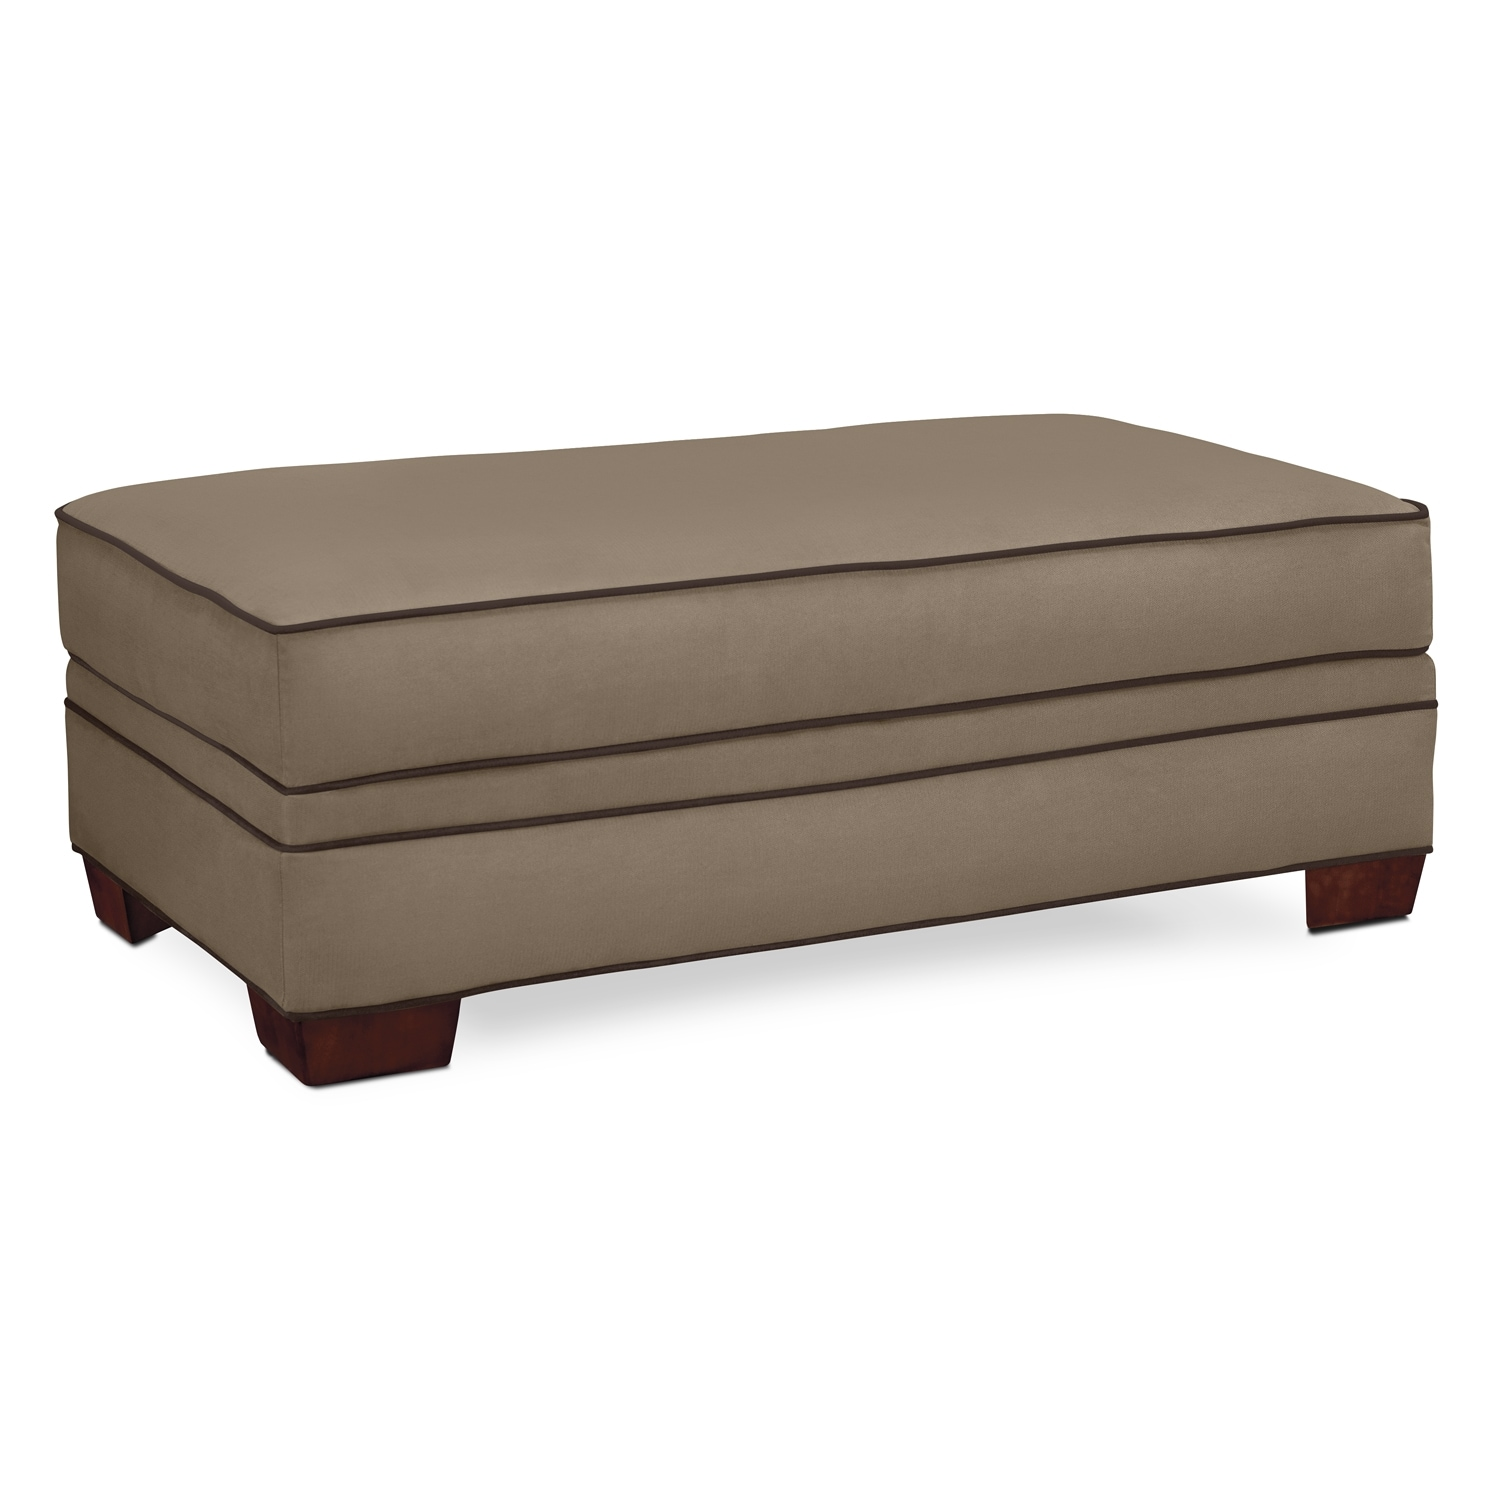 Living Room Furniture - Rendezvous Ottoman - Tan